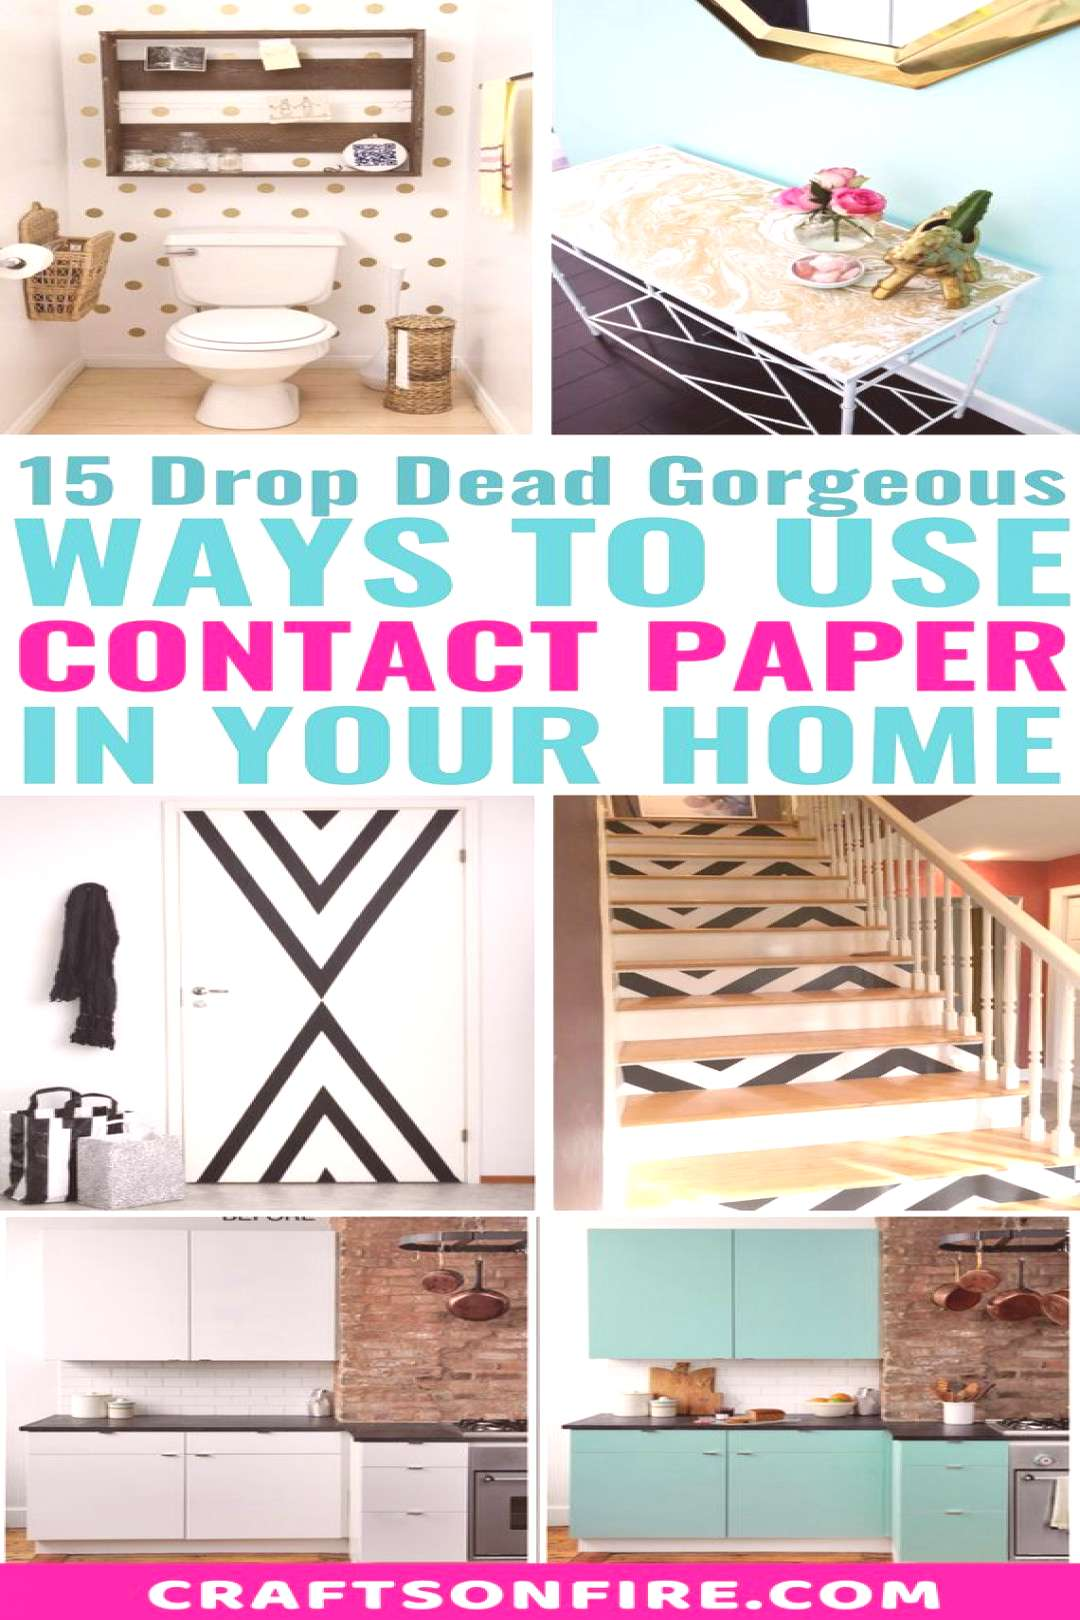 Amazing ways to use contact paper and make your home decor look stunning! These tutorials are also